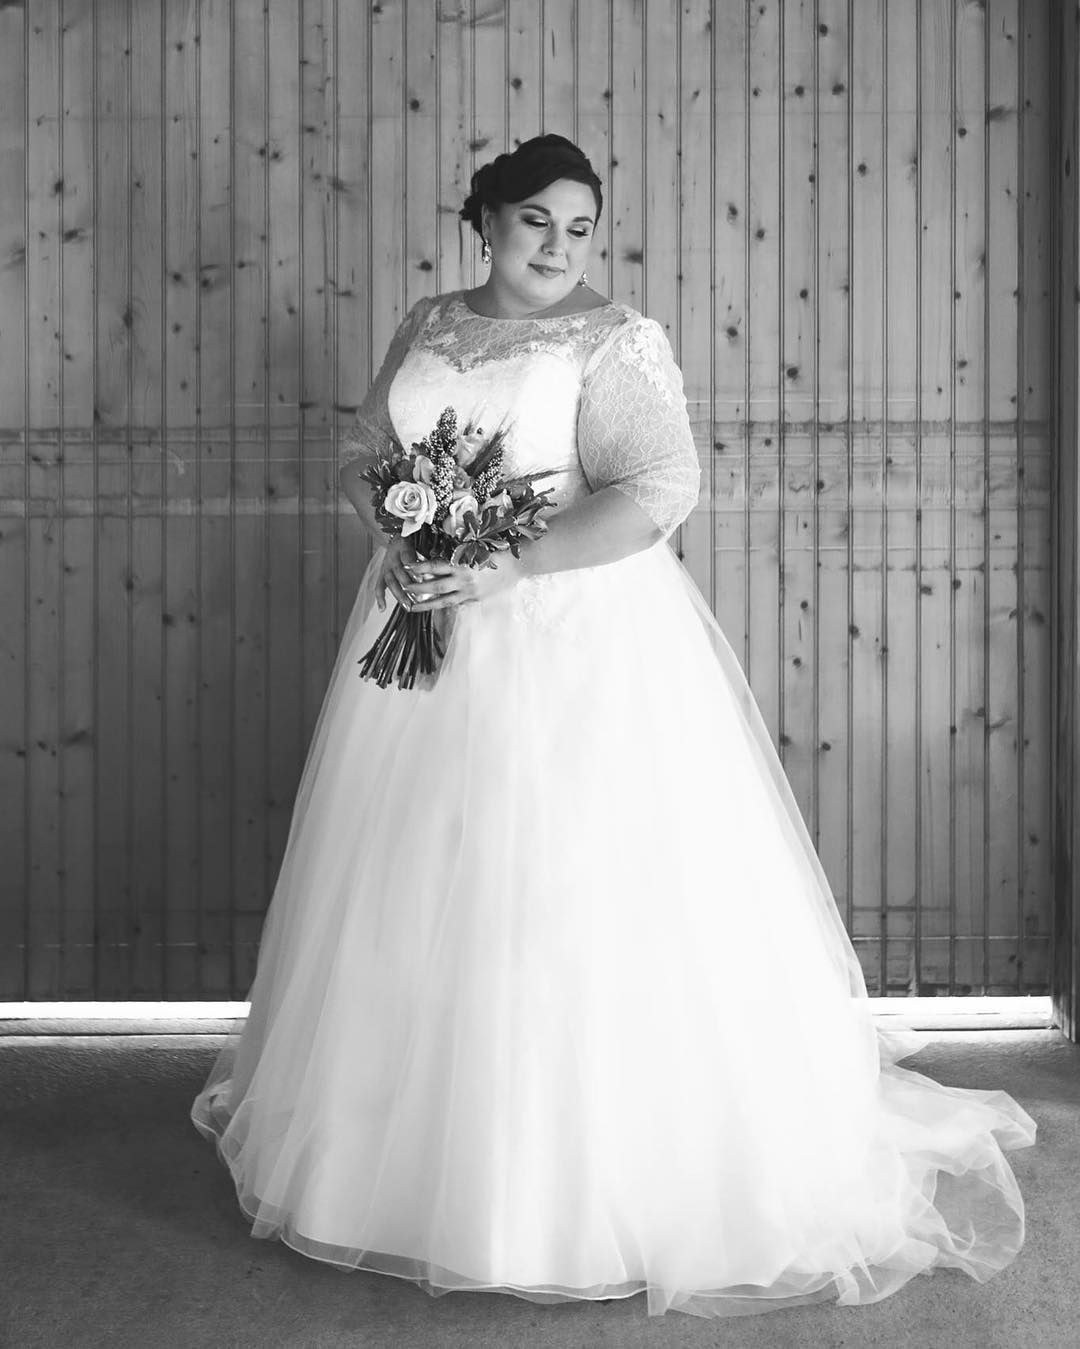 Wedding Gowns For Petite Figures: Custom Plus Size Wedding Gowns For Fuller Figured Women In